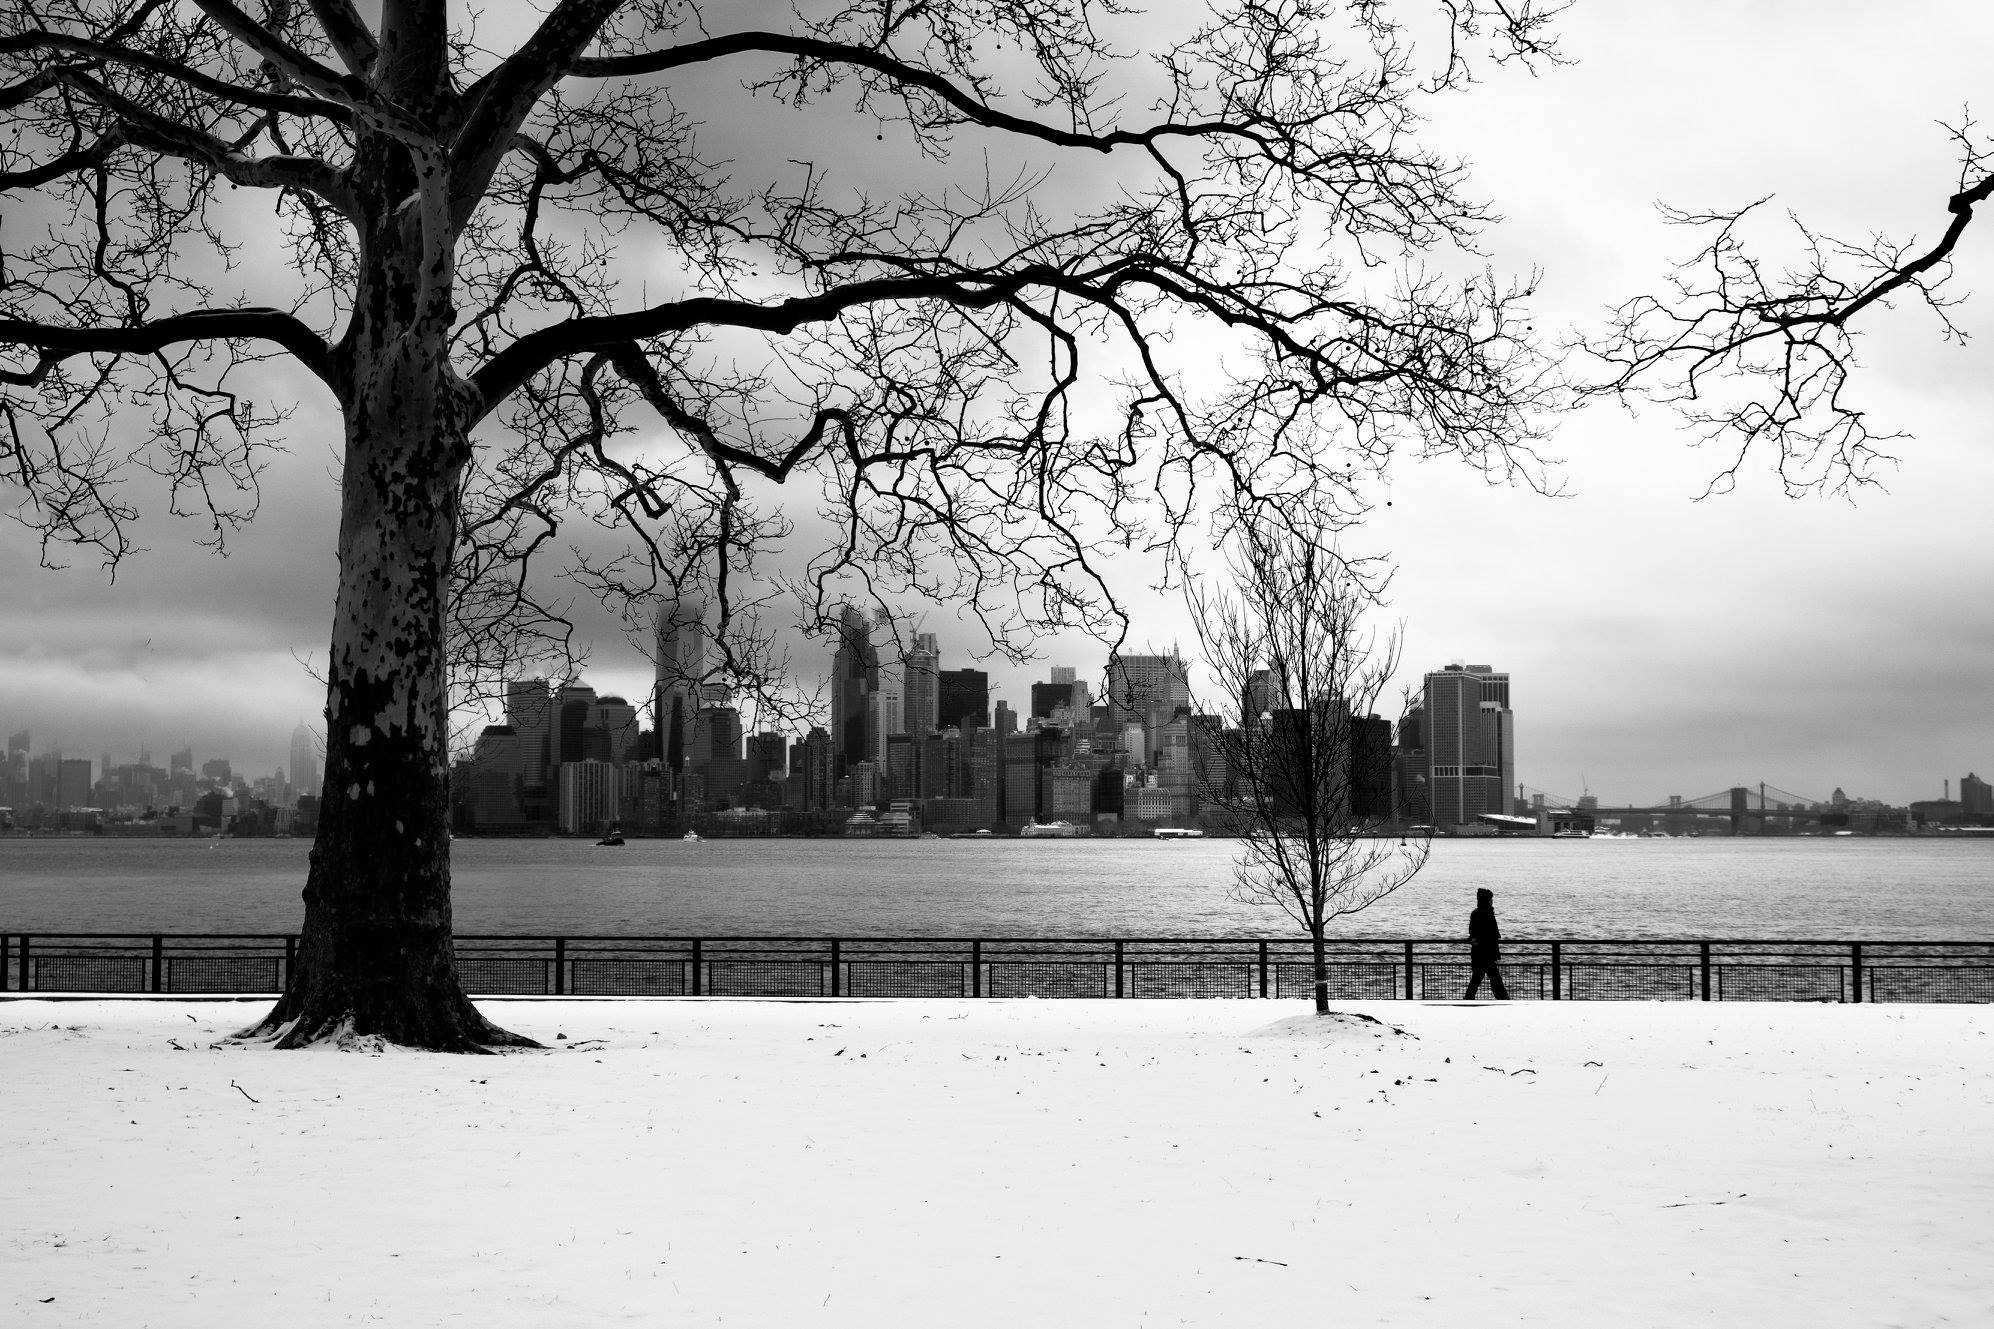 Winter in New York...